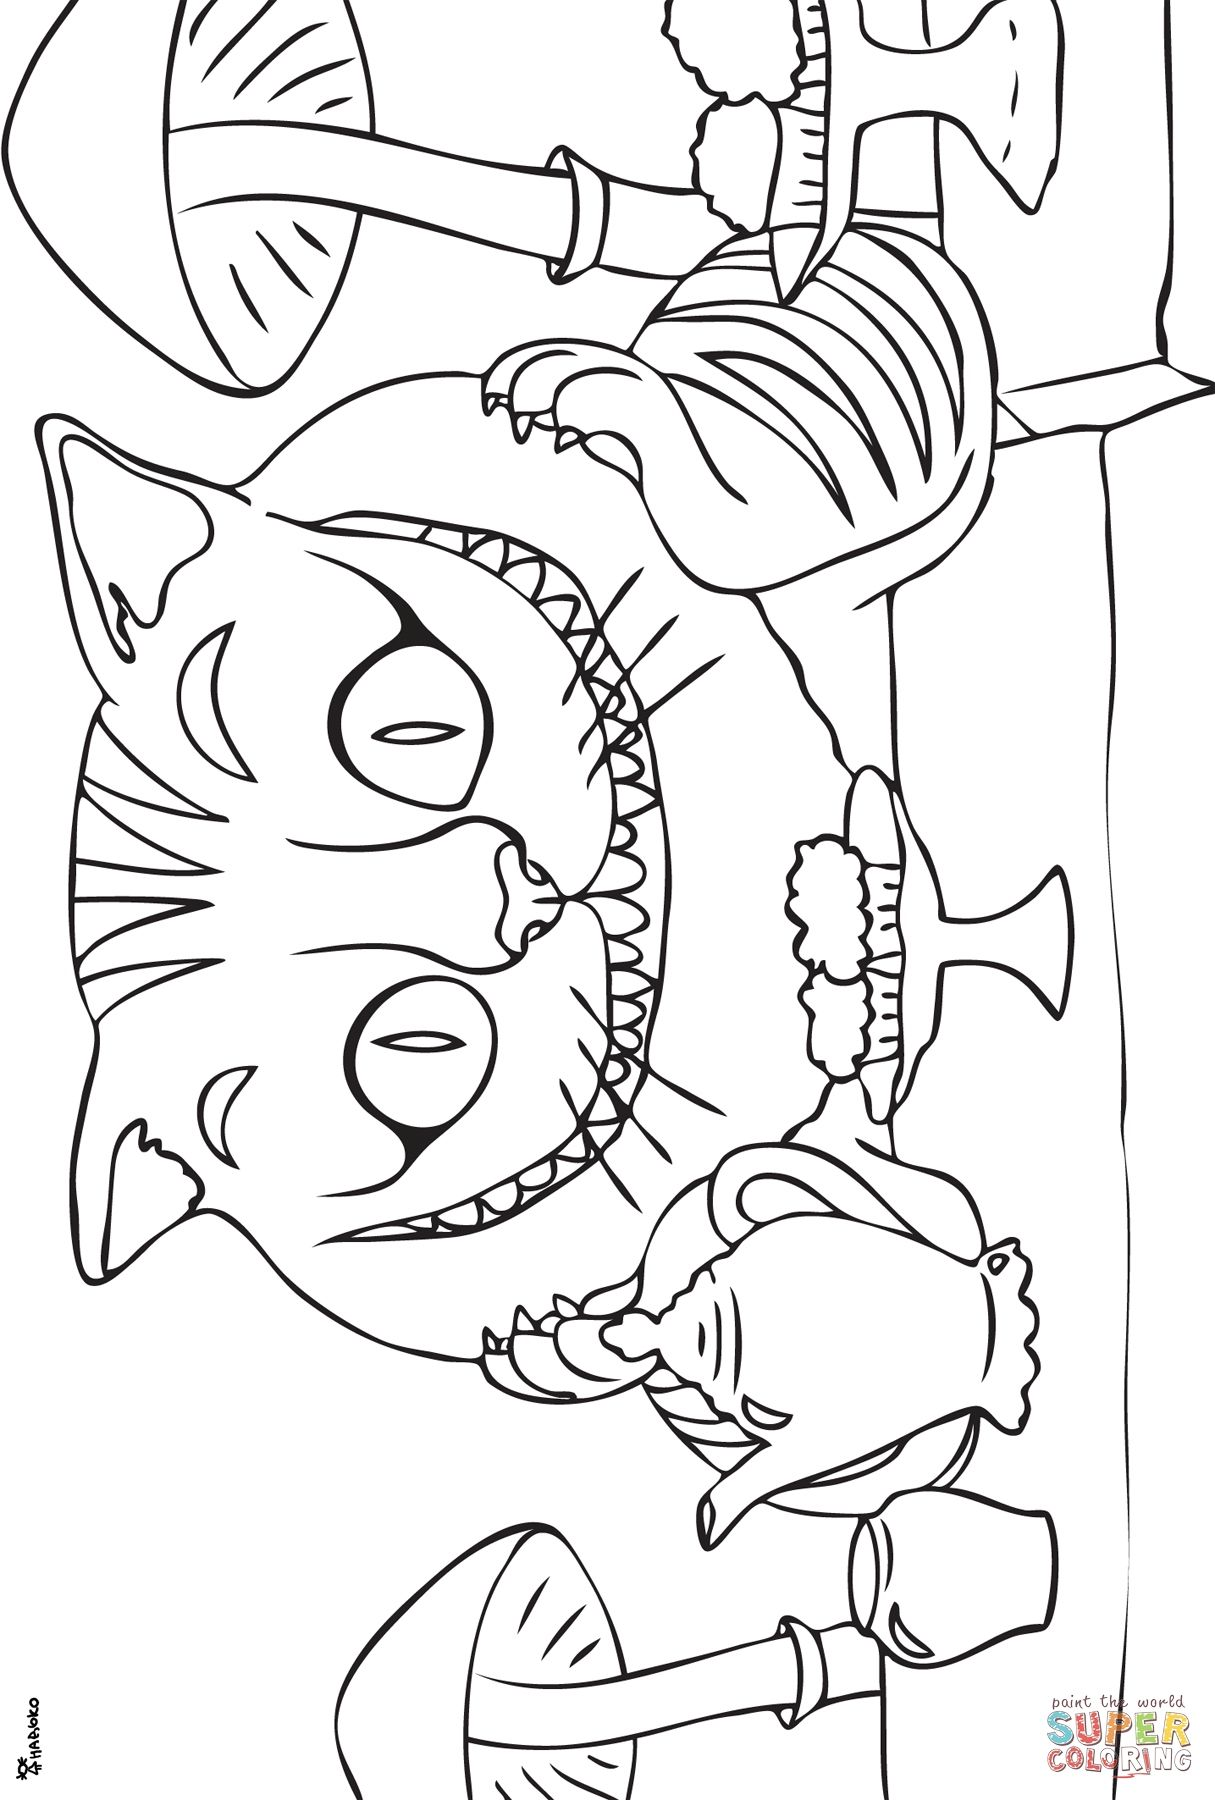 Cheshire Cat Coloring page | Free Printable Coloring Pages | sweet ...